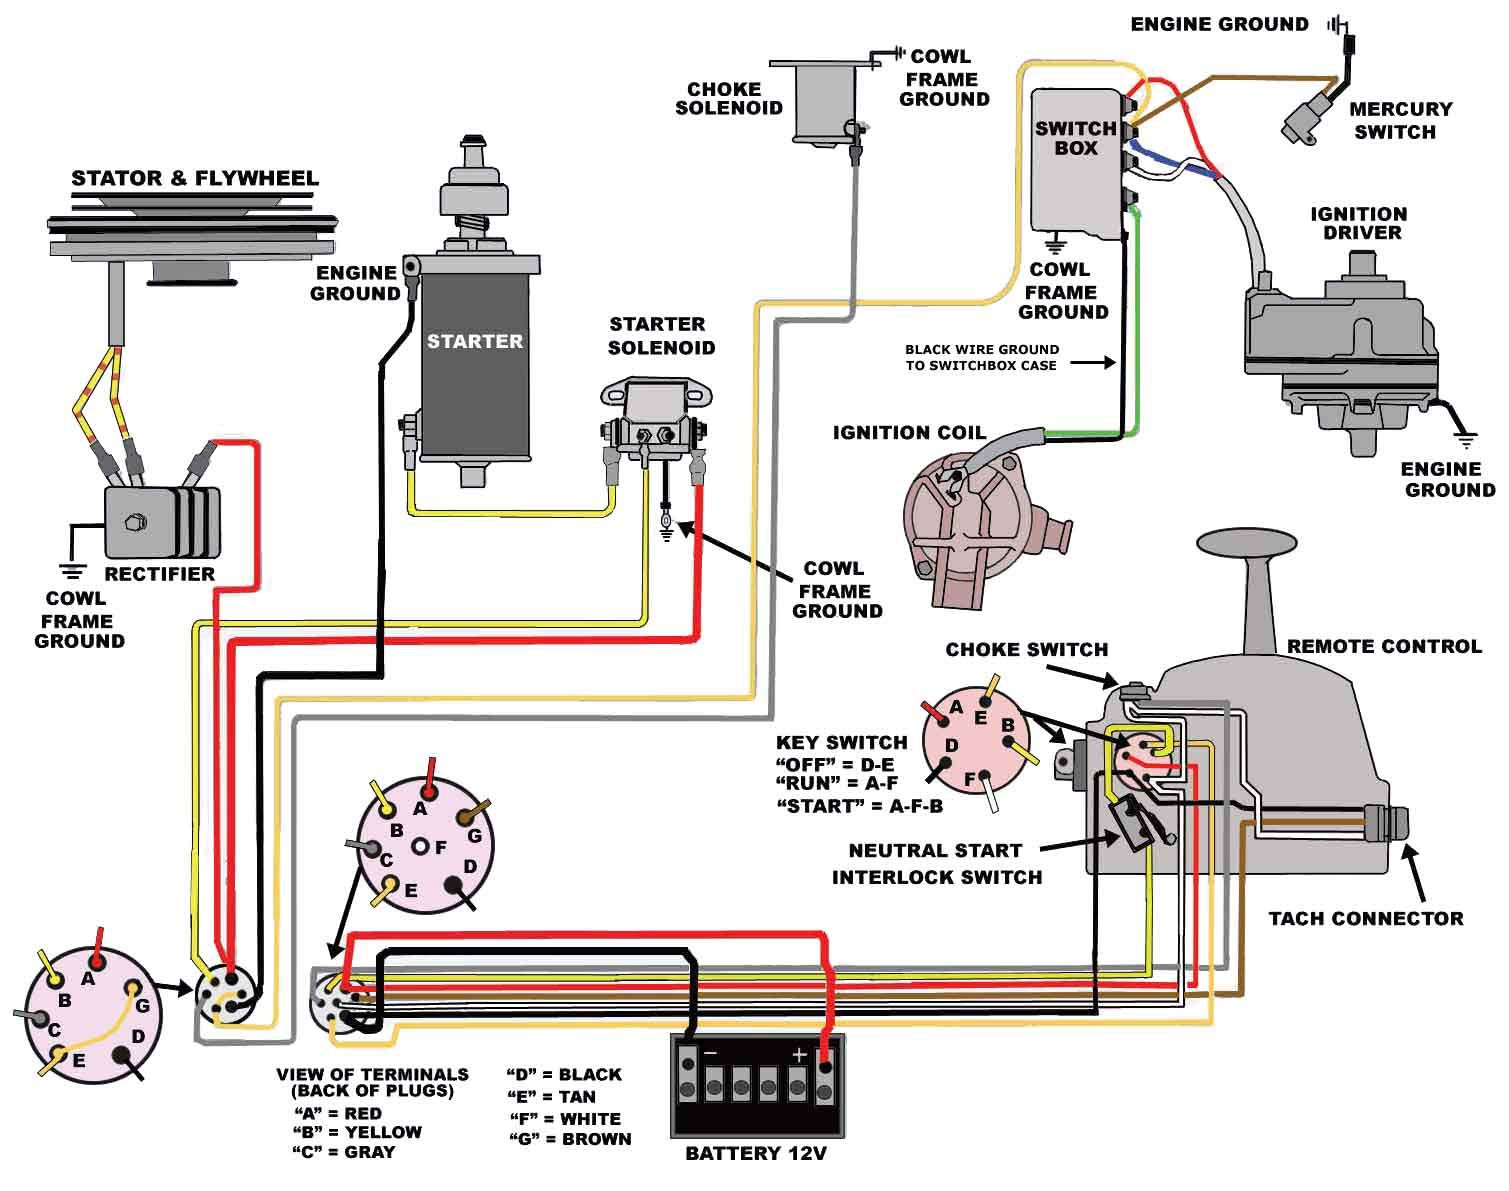 medium resolution of 50 merc fuel sending unit wiring diagram wiring diagram third level rh 11 2 13 jacobwinterstein com boat fuel sending unit wiring diagram marine fuel